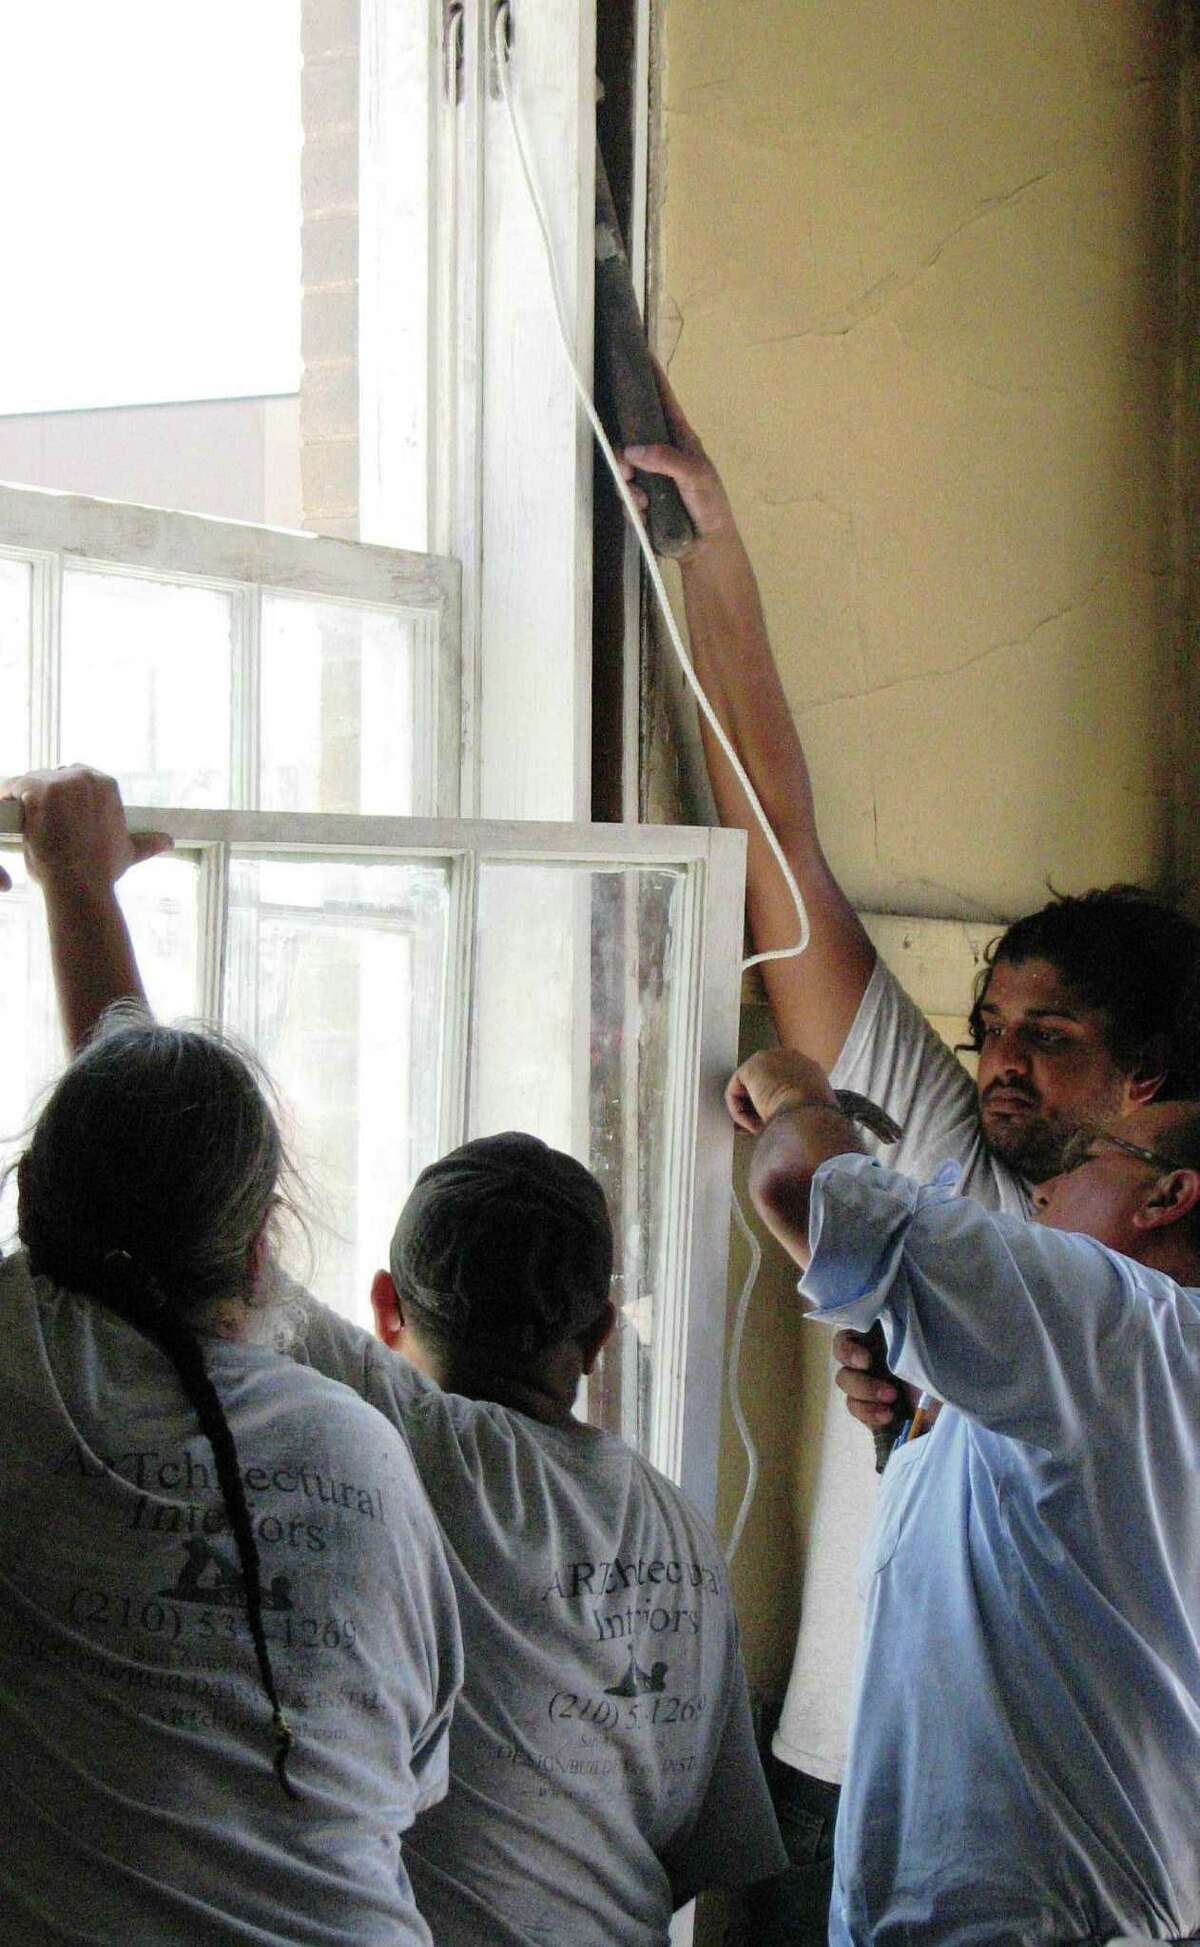 Participants in a city-sponsored historic window repair workshop replace a window with a cord and weight.